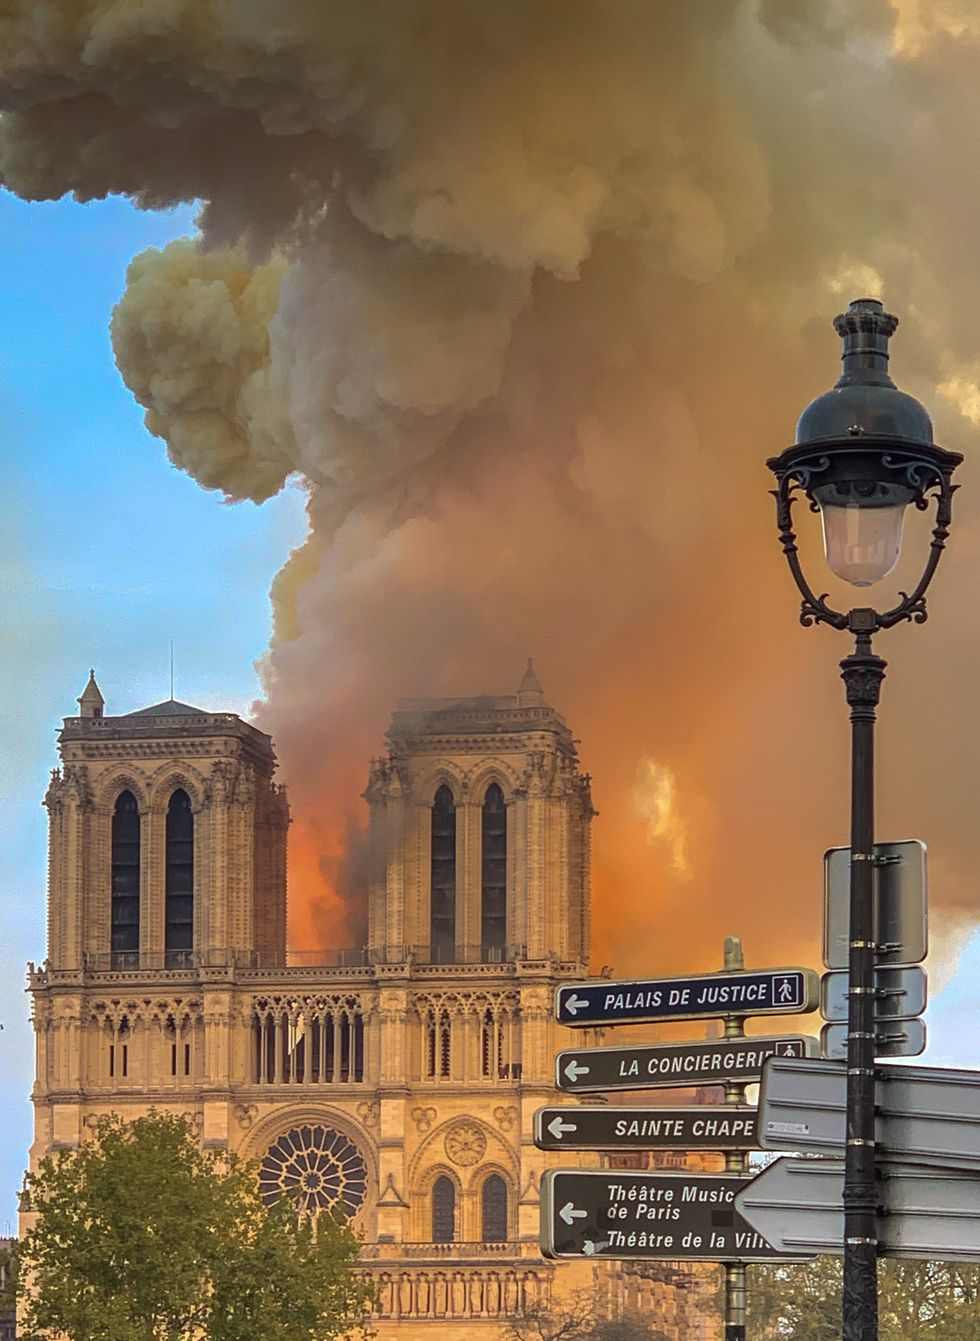 What The Notre Dame Fire Says About Society